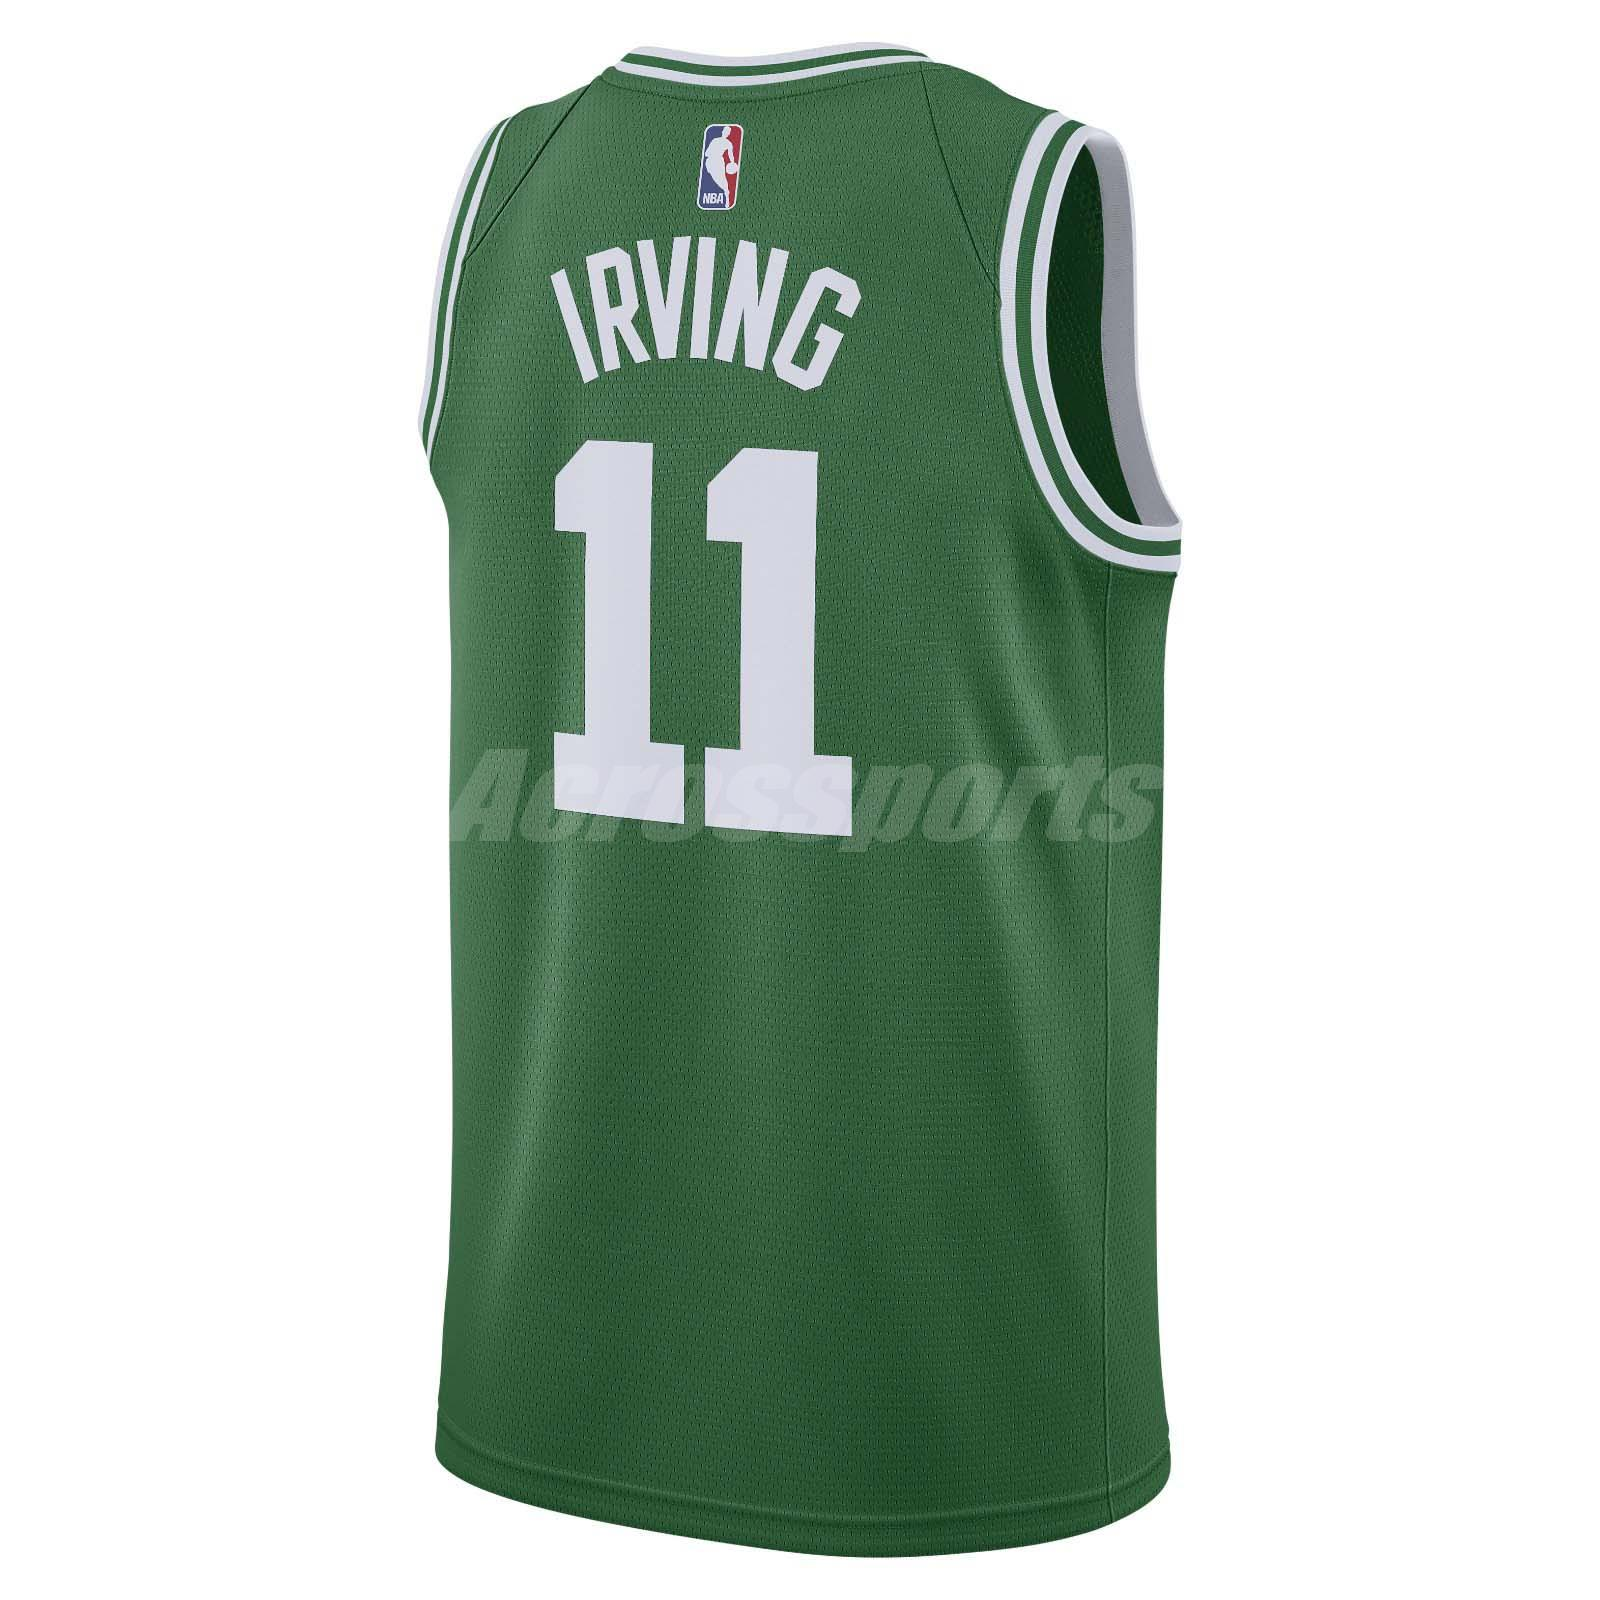 e87bd855855 Nike Men Boston Celtics Swingman Jersey Kyrie Irving NBA Basketball ...